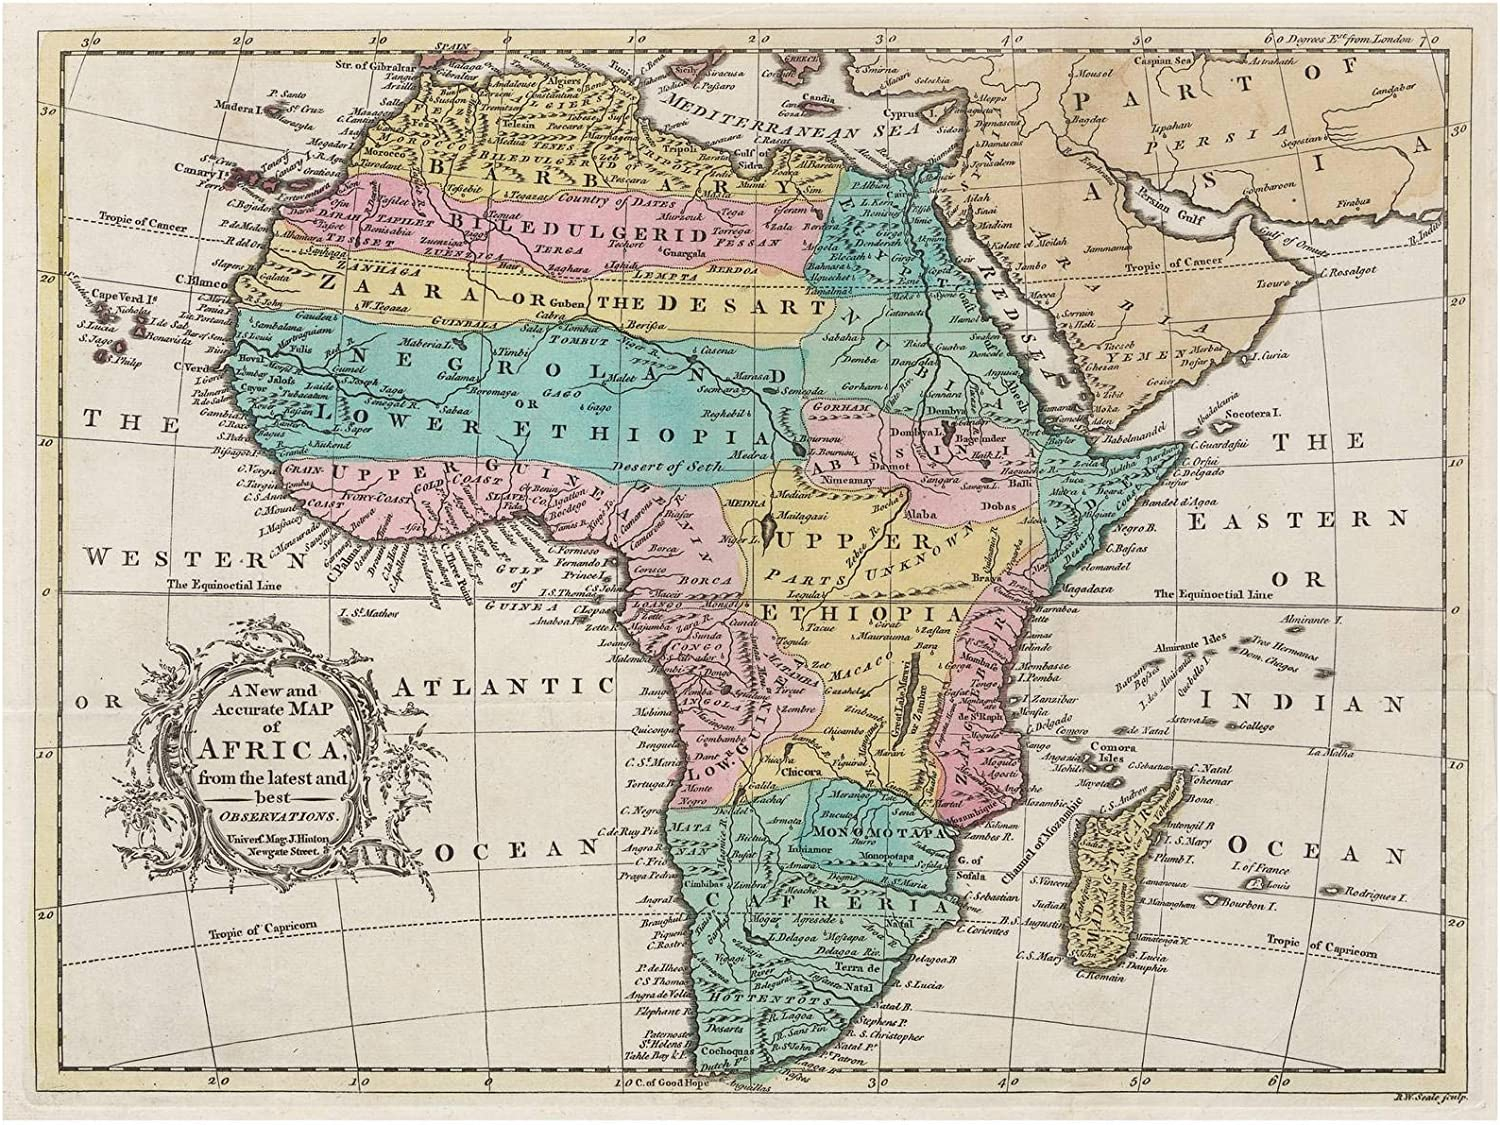 Accurate Map Of Africa Amazon.com: Historic 1747 Map   A New and Accurate map of Africa